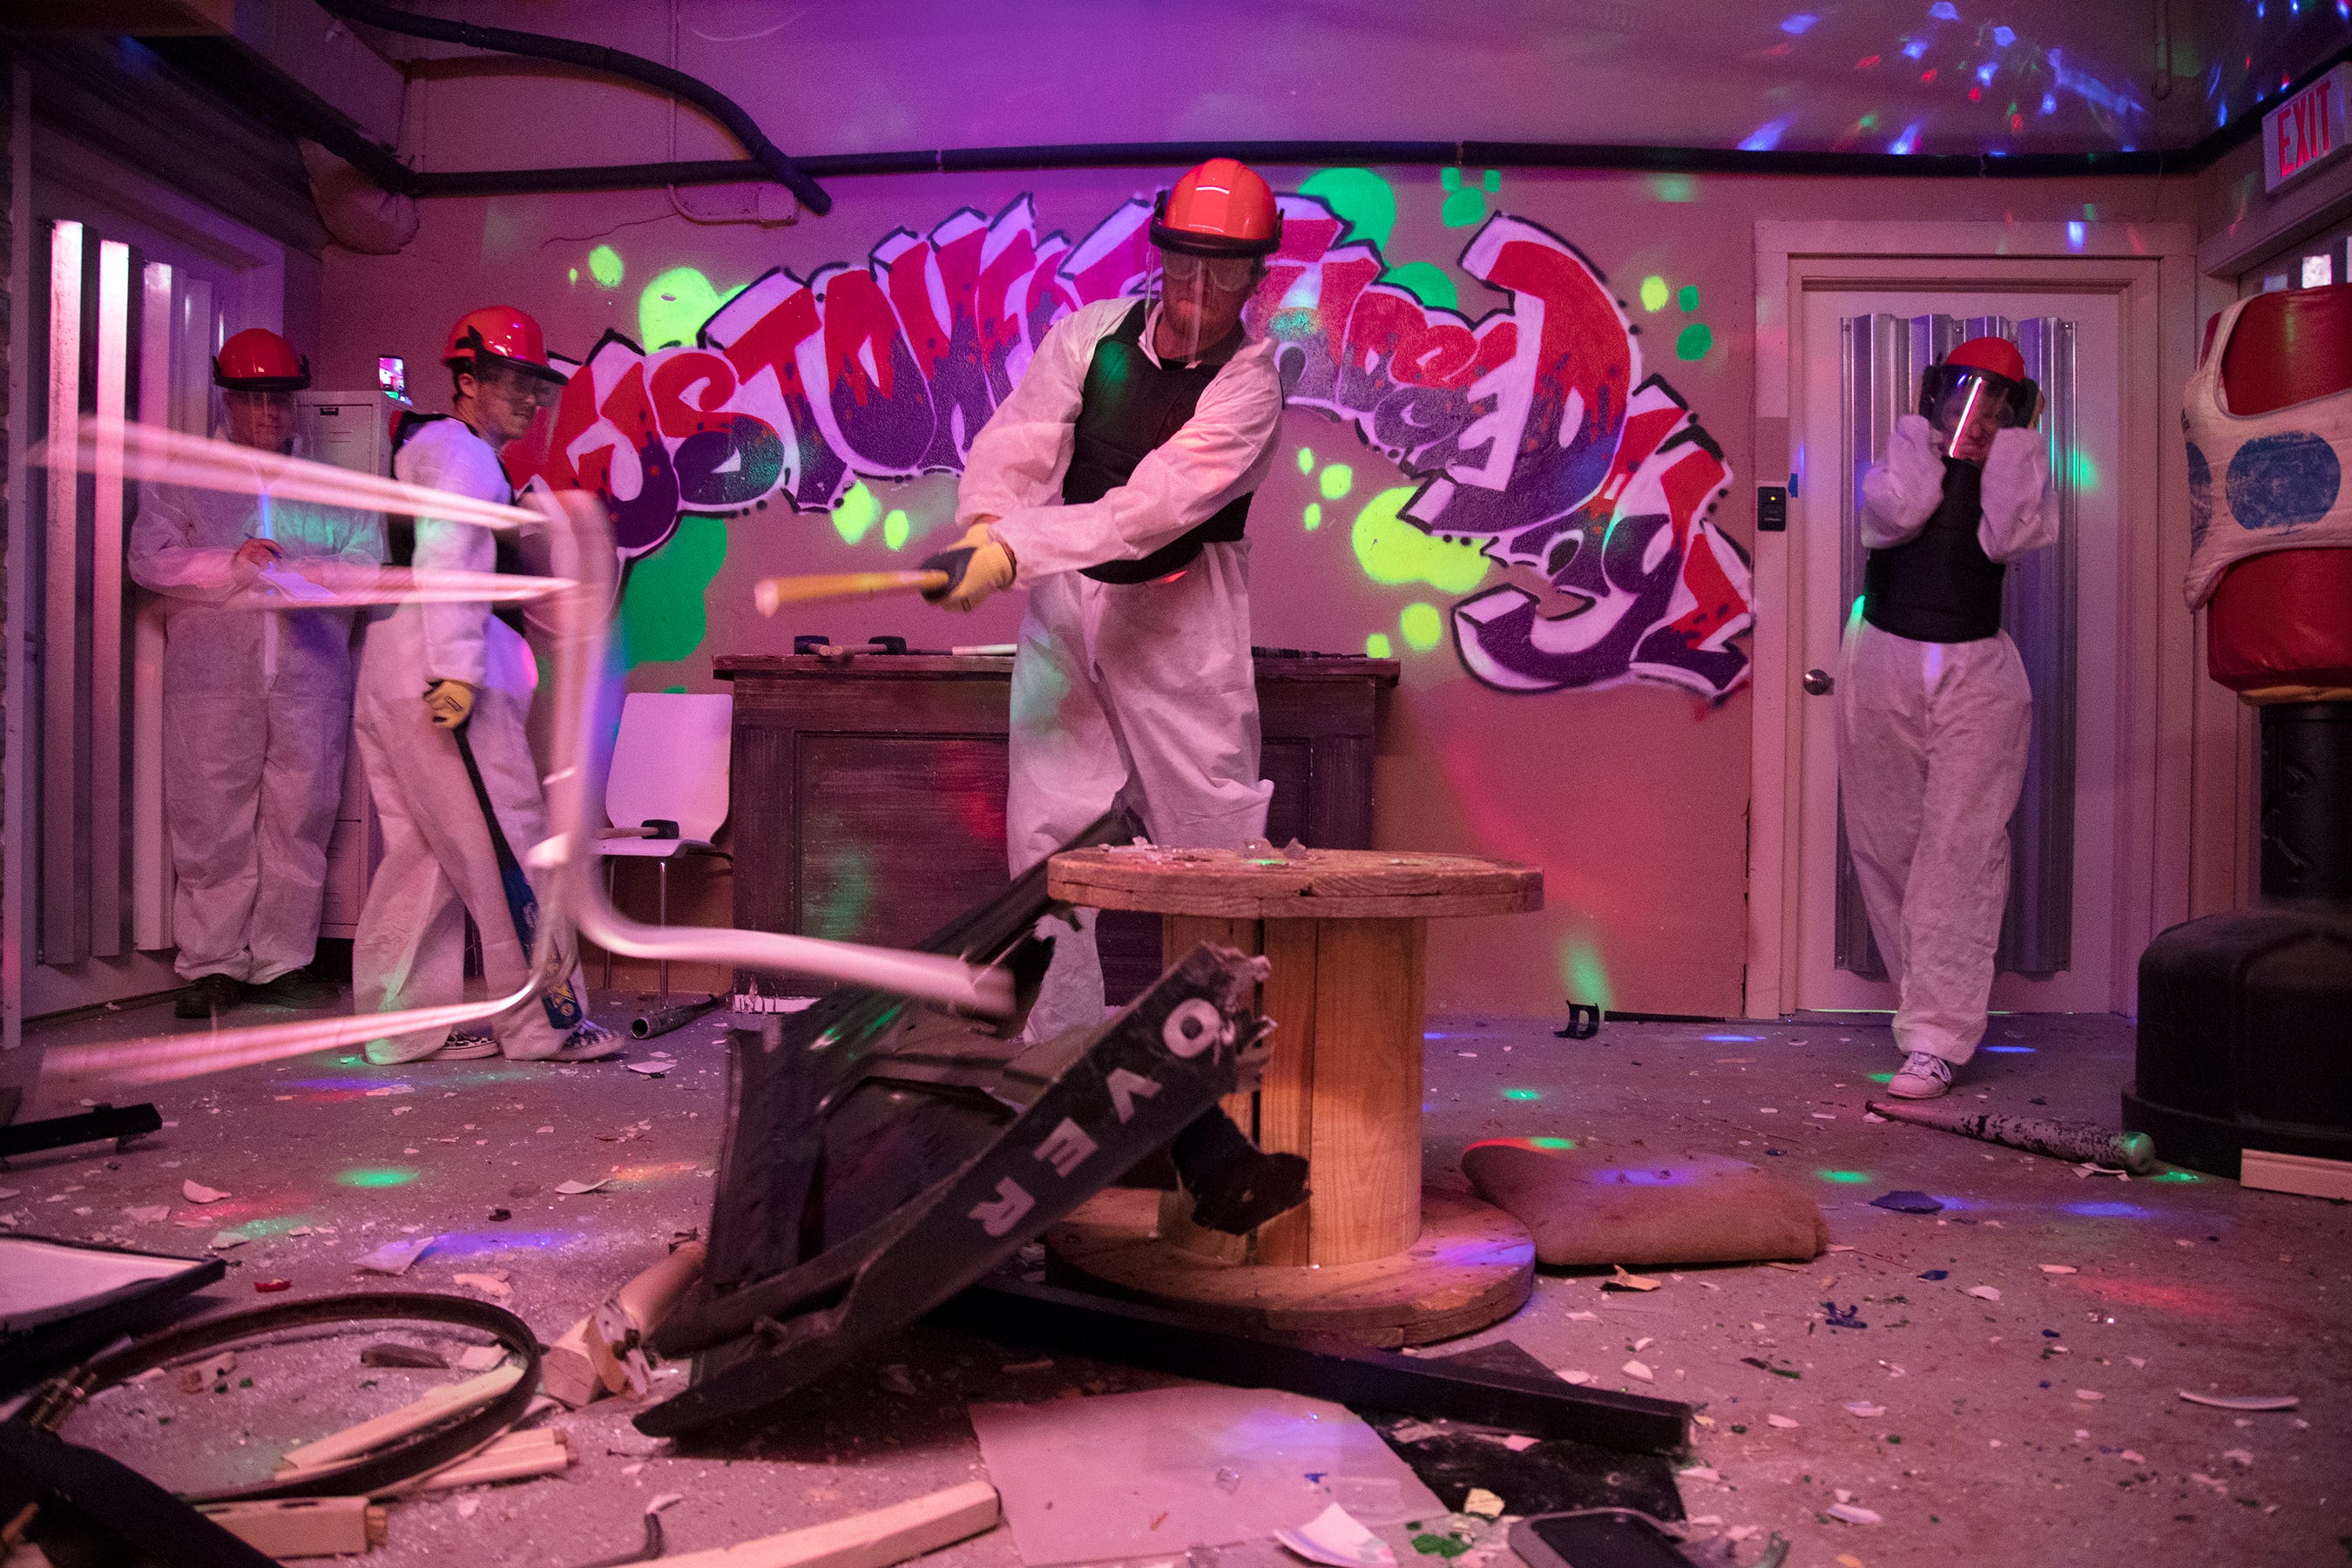 Rage rooms in Fort Myers: Break stuff, feel good as trend comes to Southwest Florida